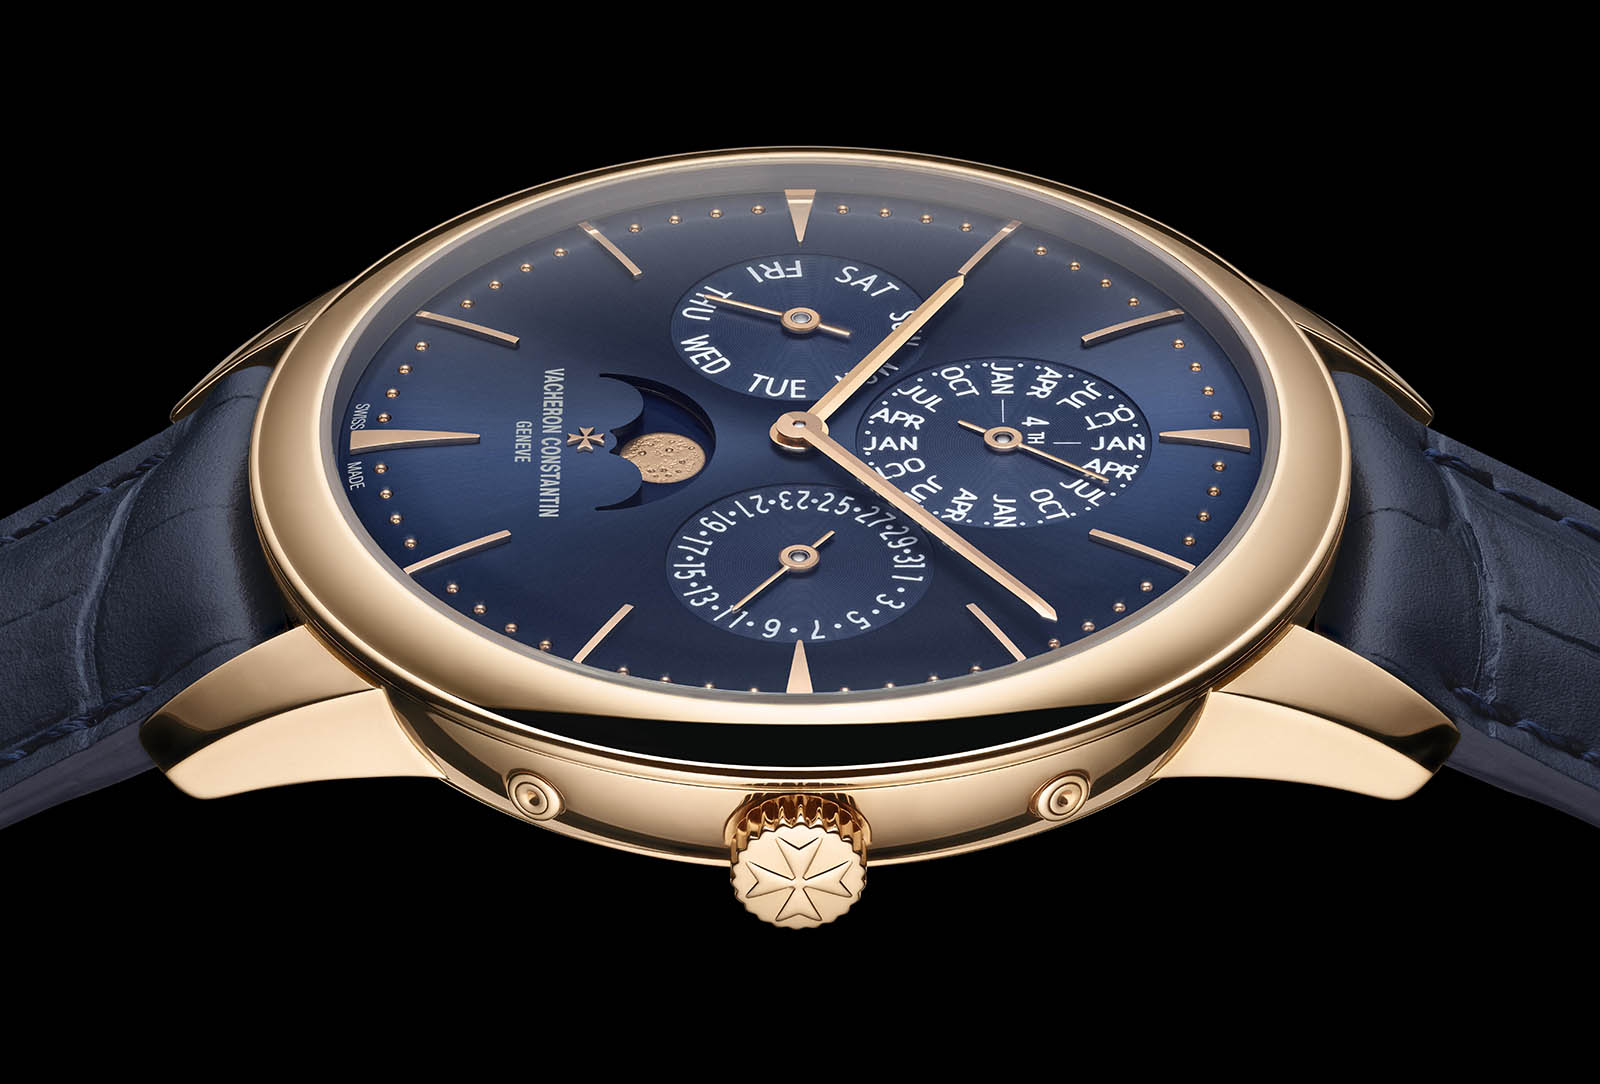 Patrimony Perpetual Calendar Ultra-thin blue dial